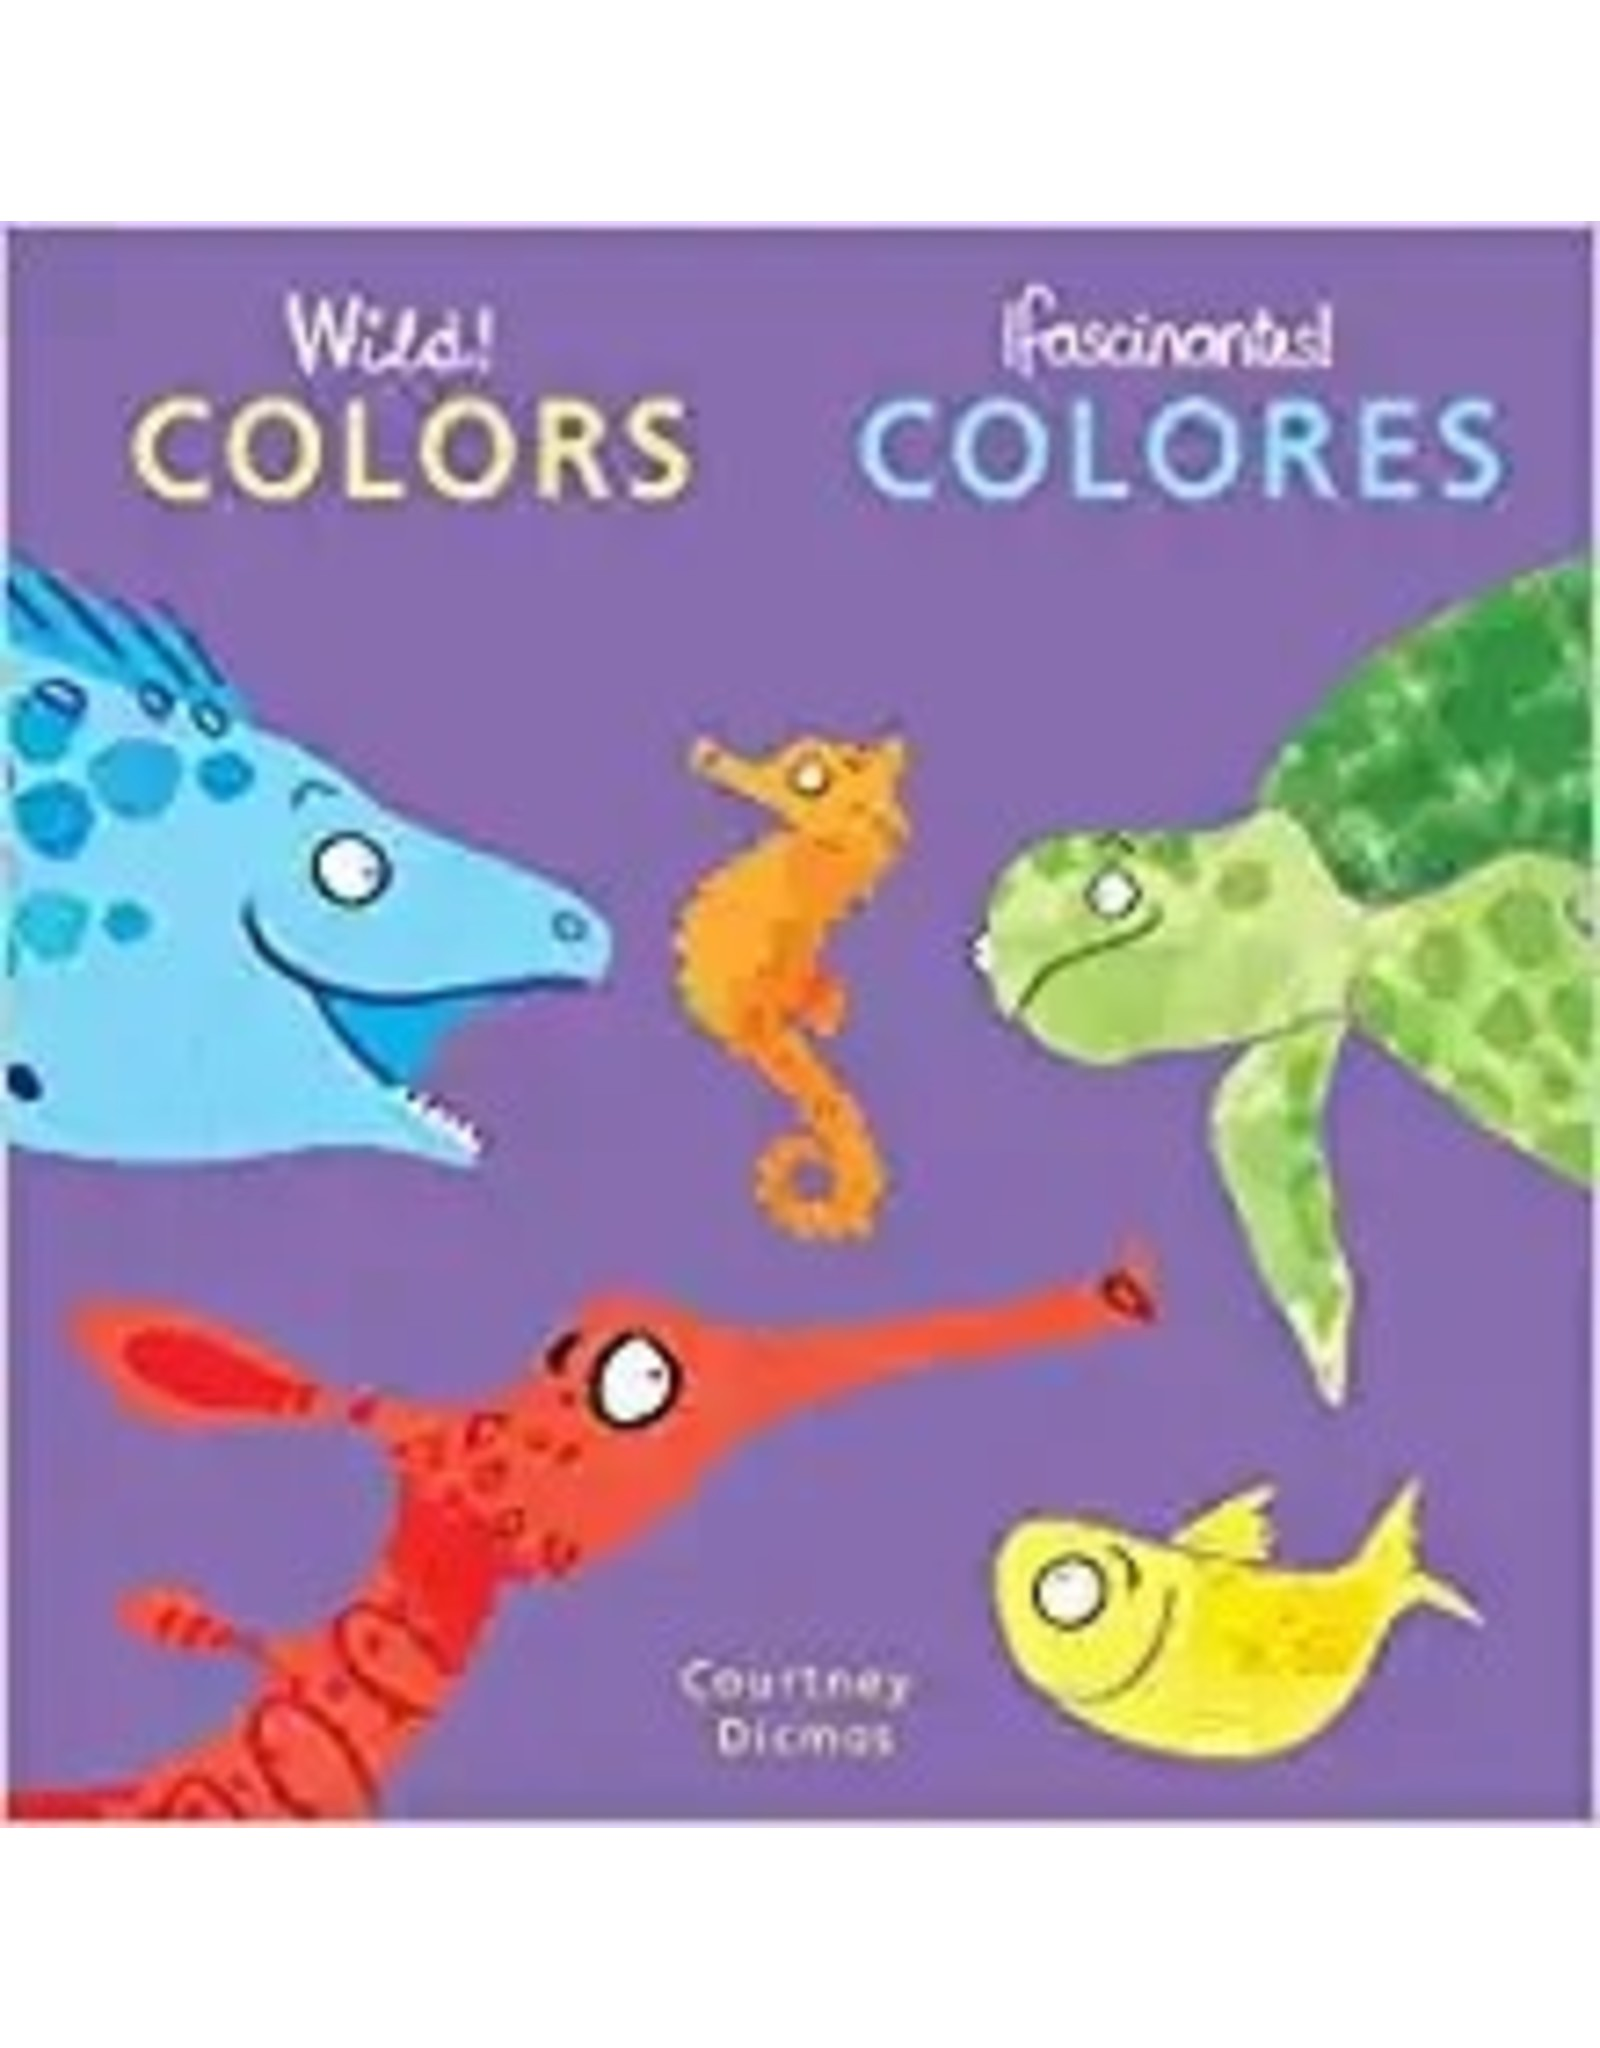 Colors colore wild ifascinantes